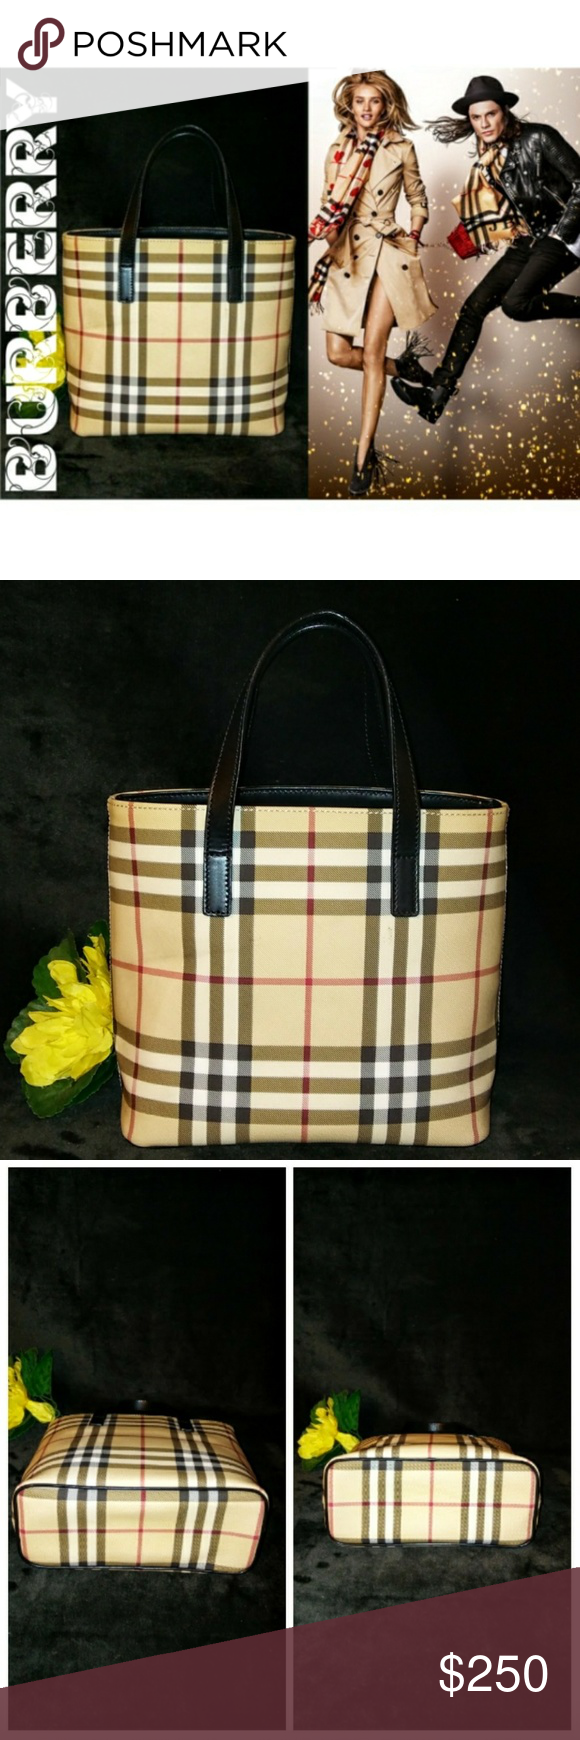 Authentic Vintage Burberry Nova Check Mini Tote Pre Owned Almost Vintage 15 Years Old Authentic Burberry Nova Che Burberry Bag Mini Tote Black Leather Strap